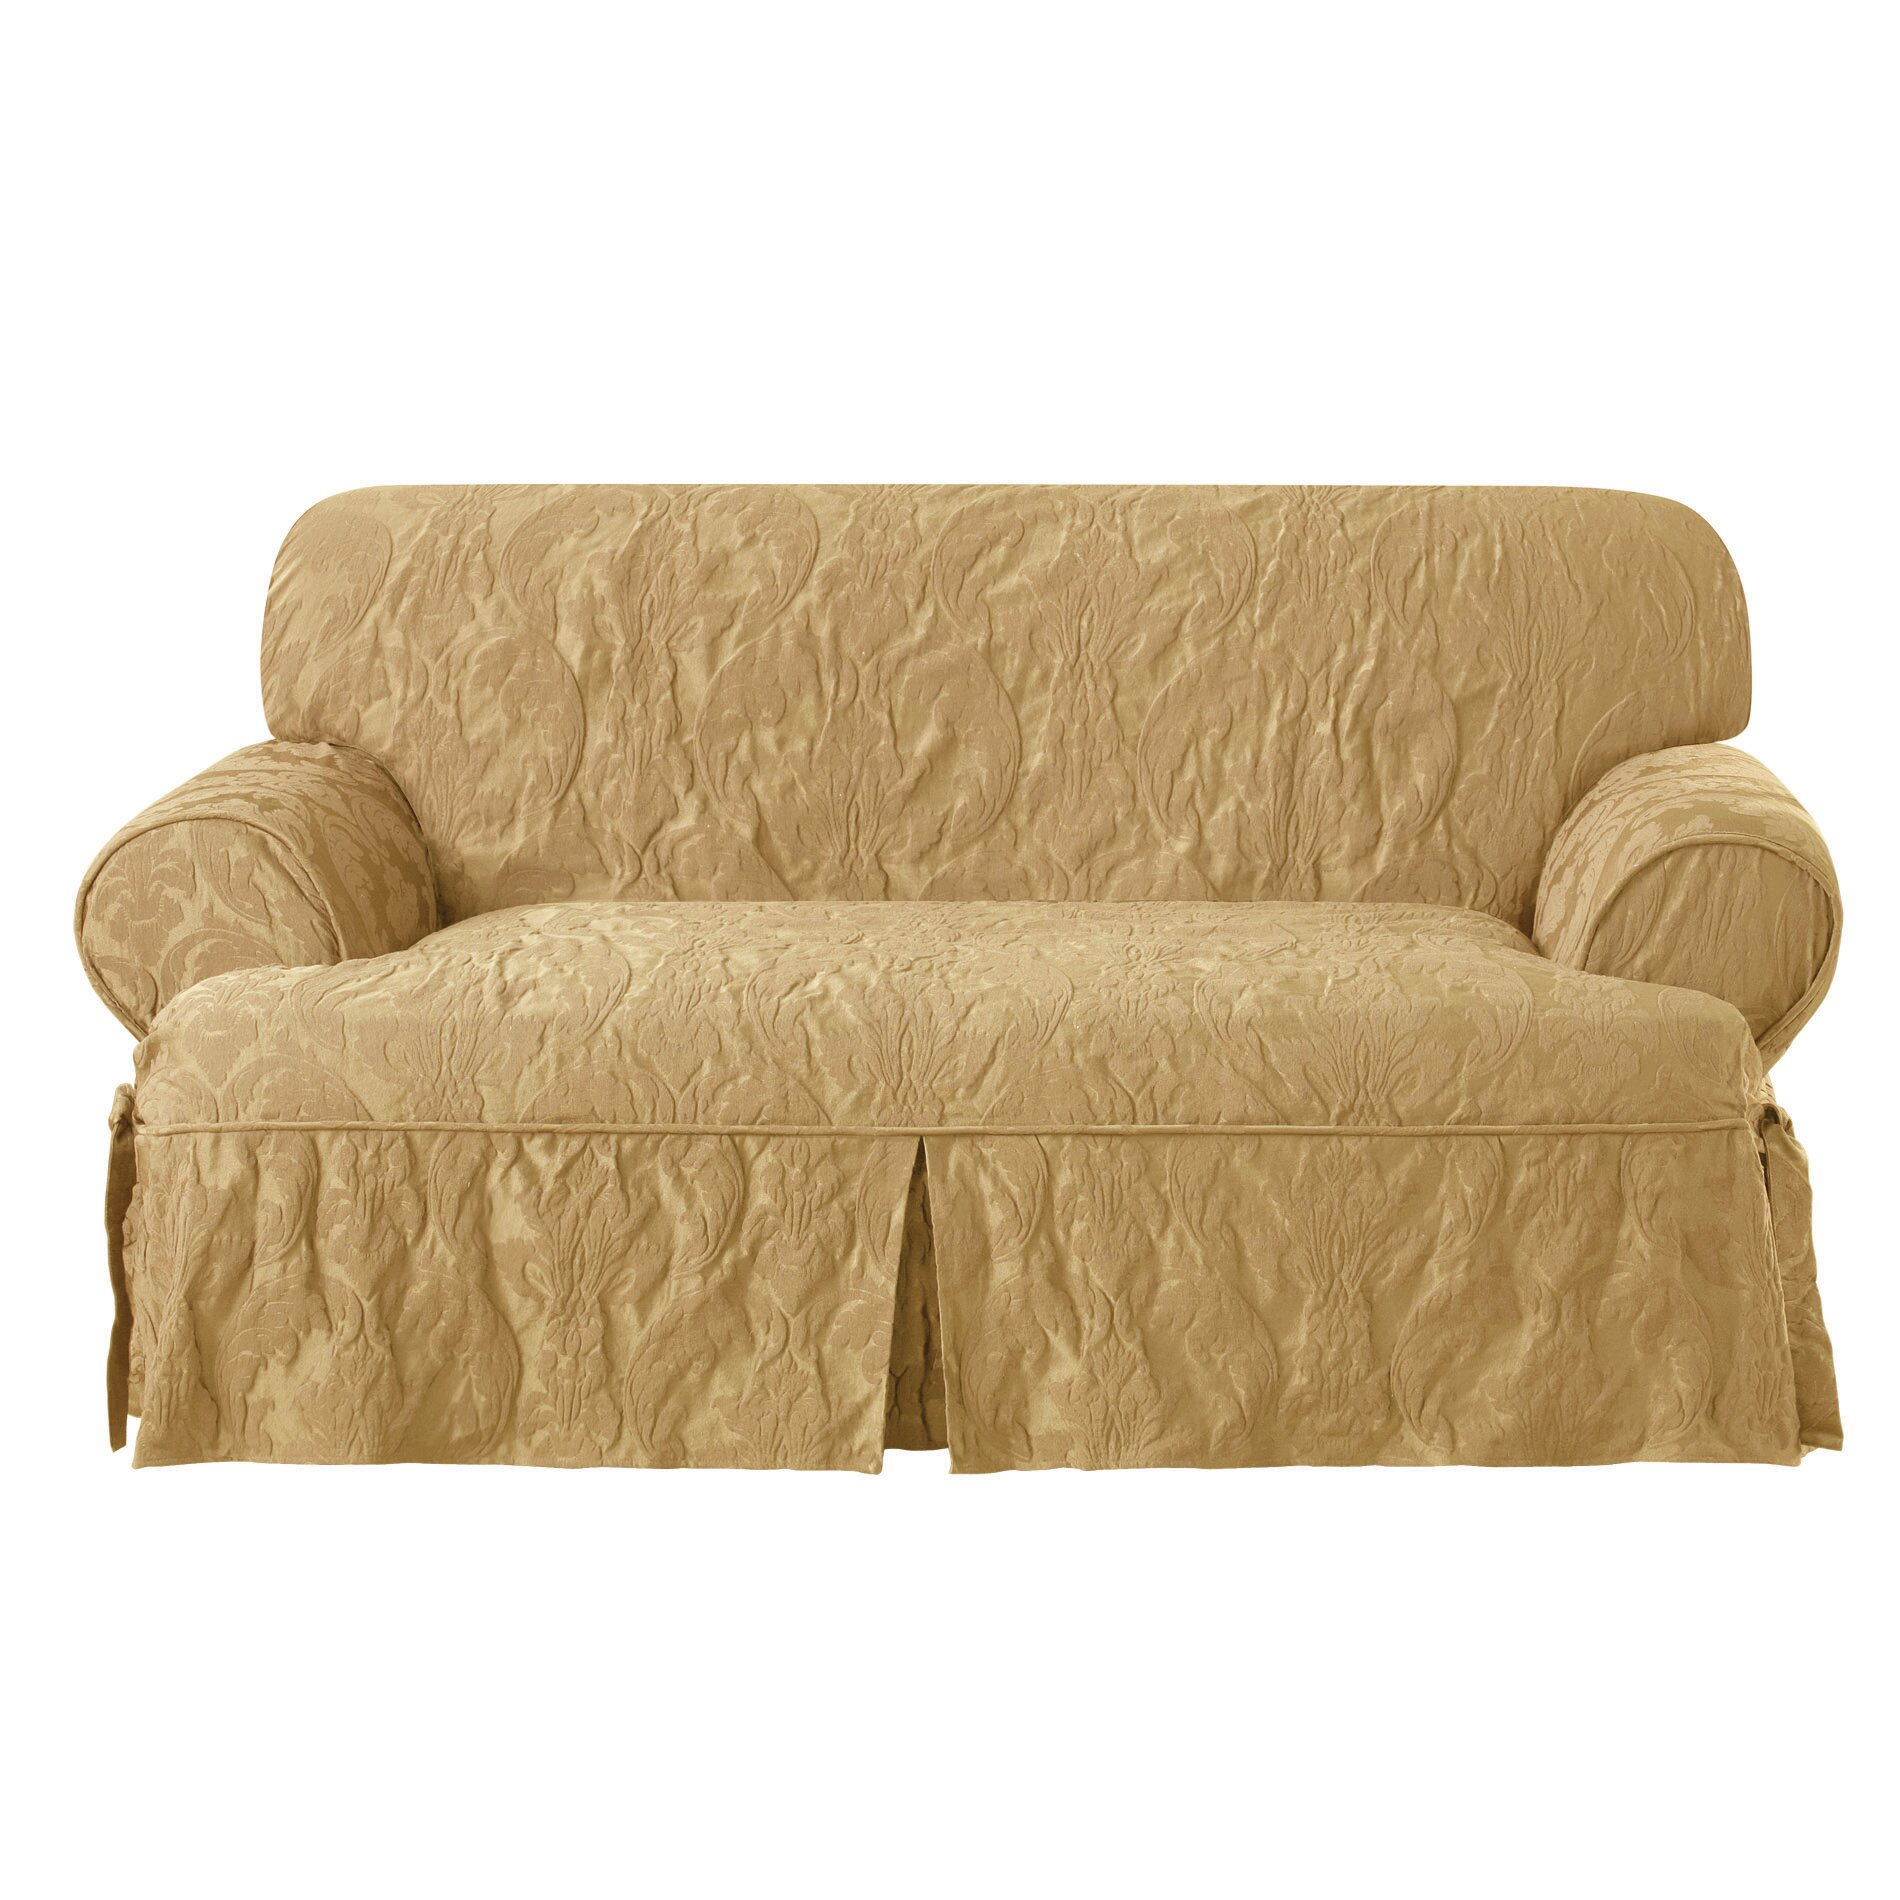 Sure fit matelasse damask loveseat t cushion slipcover reviews wayfair Loveseat t cushion slipcovers